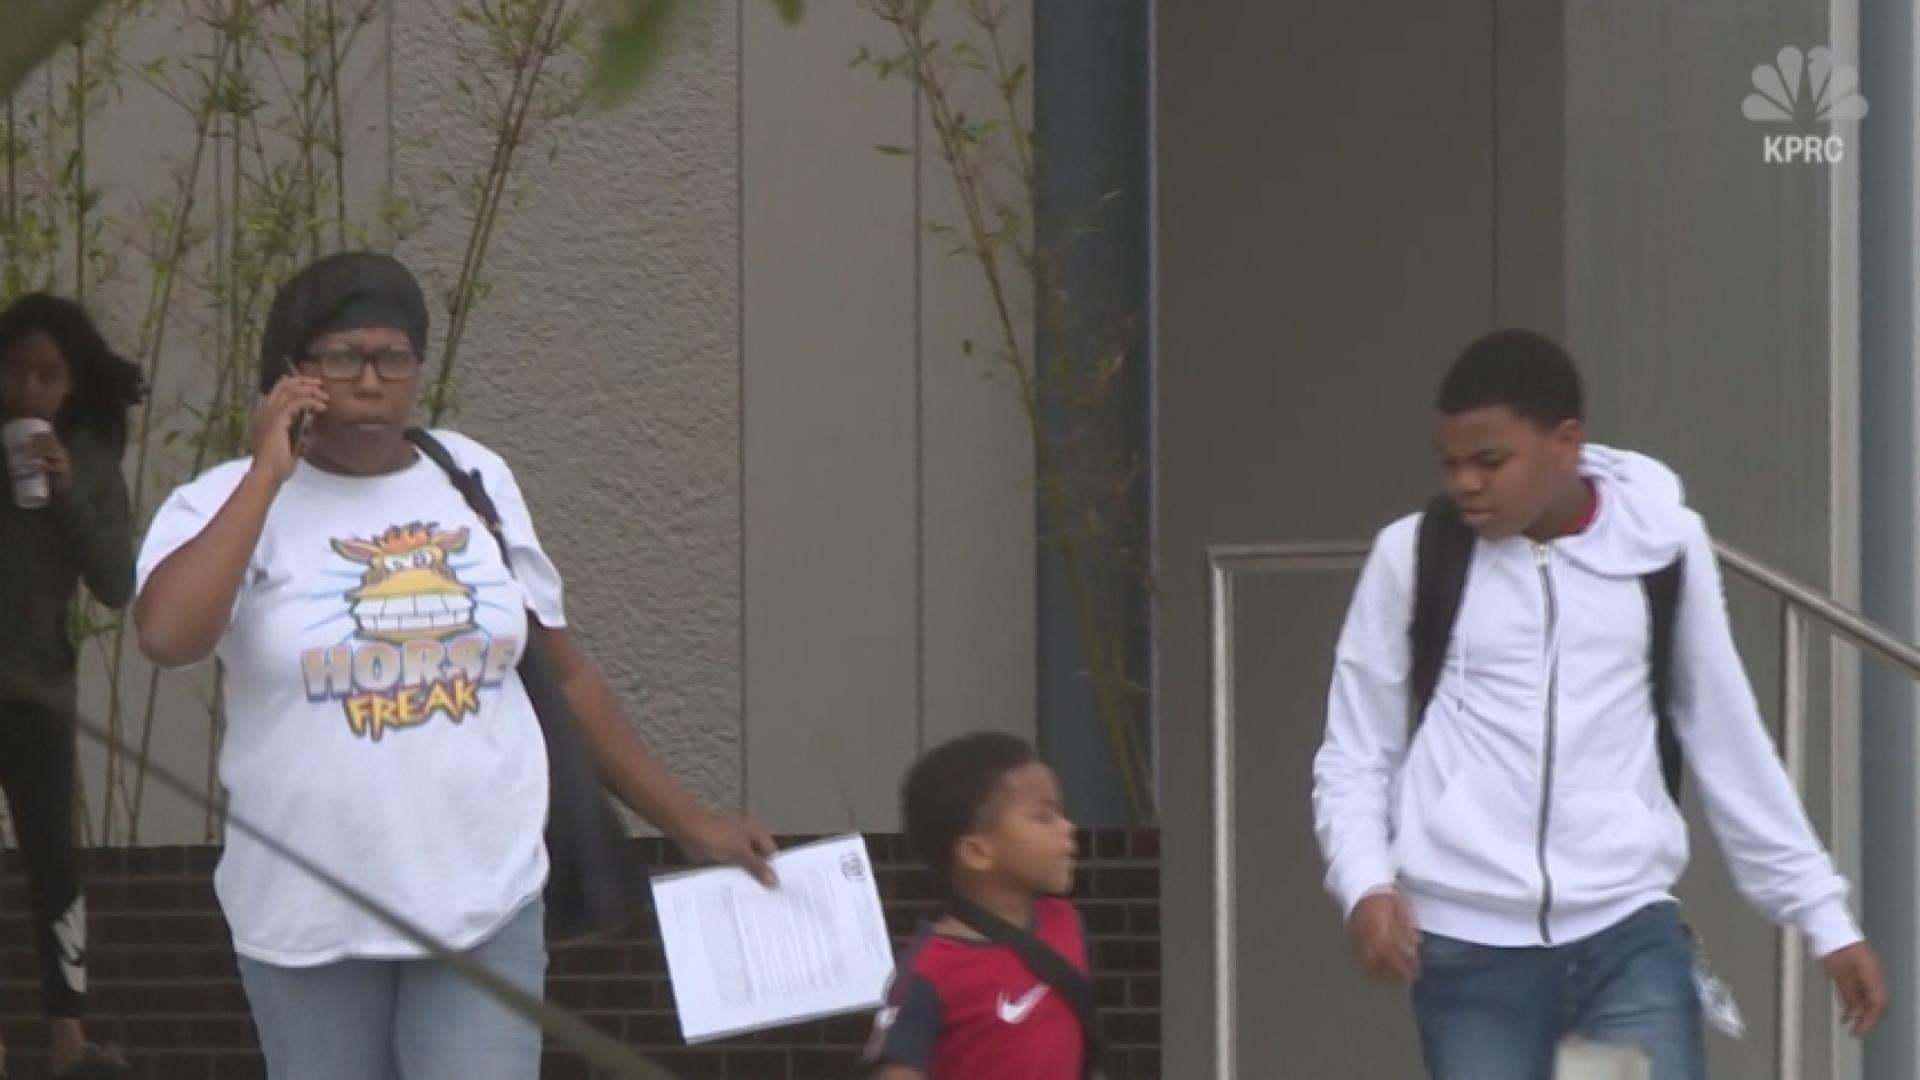 Houston school launches dress code for parents